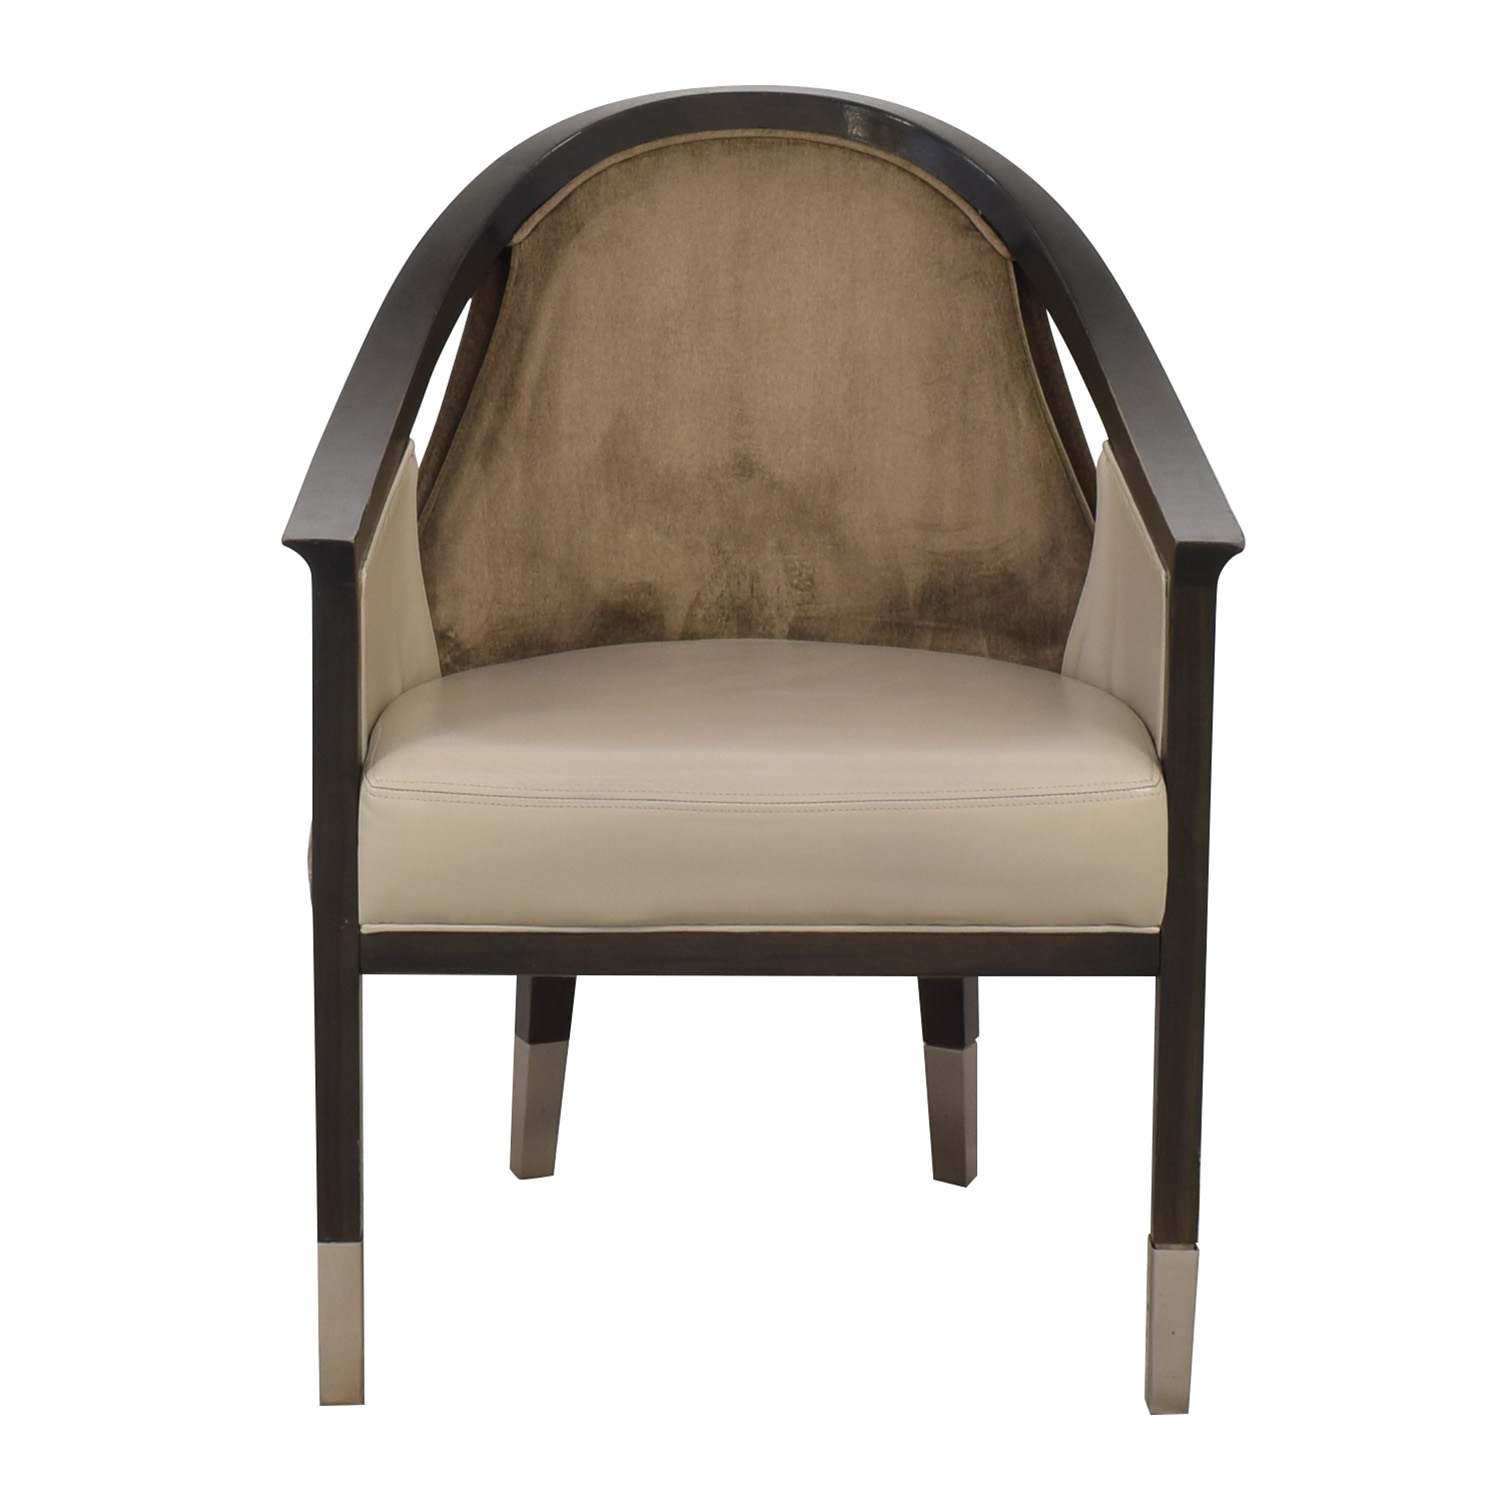 Allied Form Works Allied Works Eleven Madison Park Dining Room Chair coupon